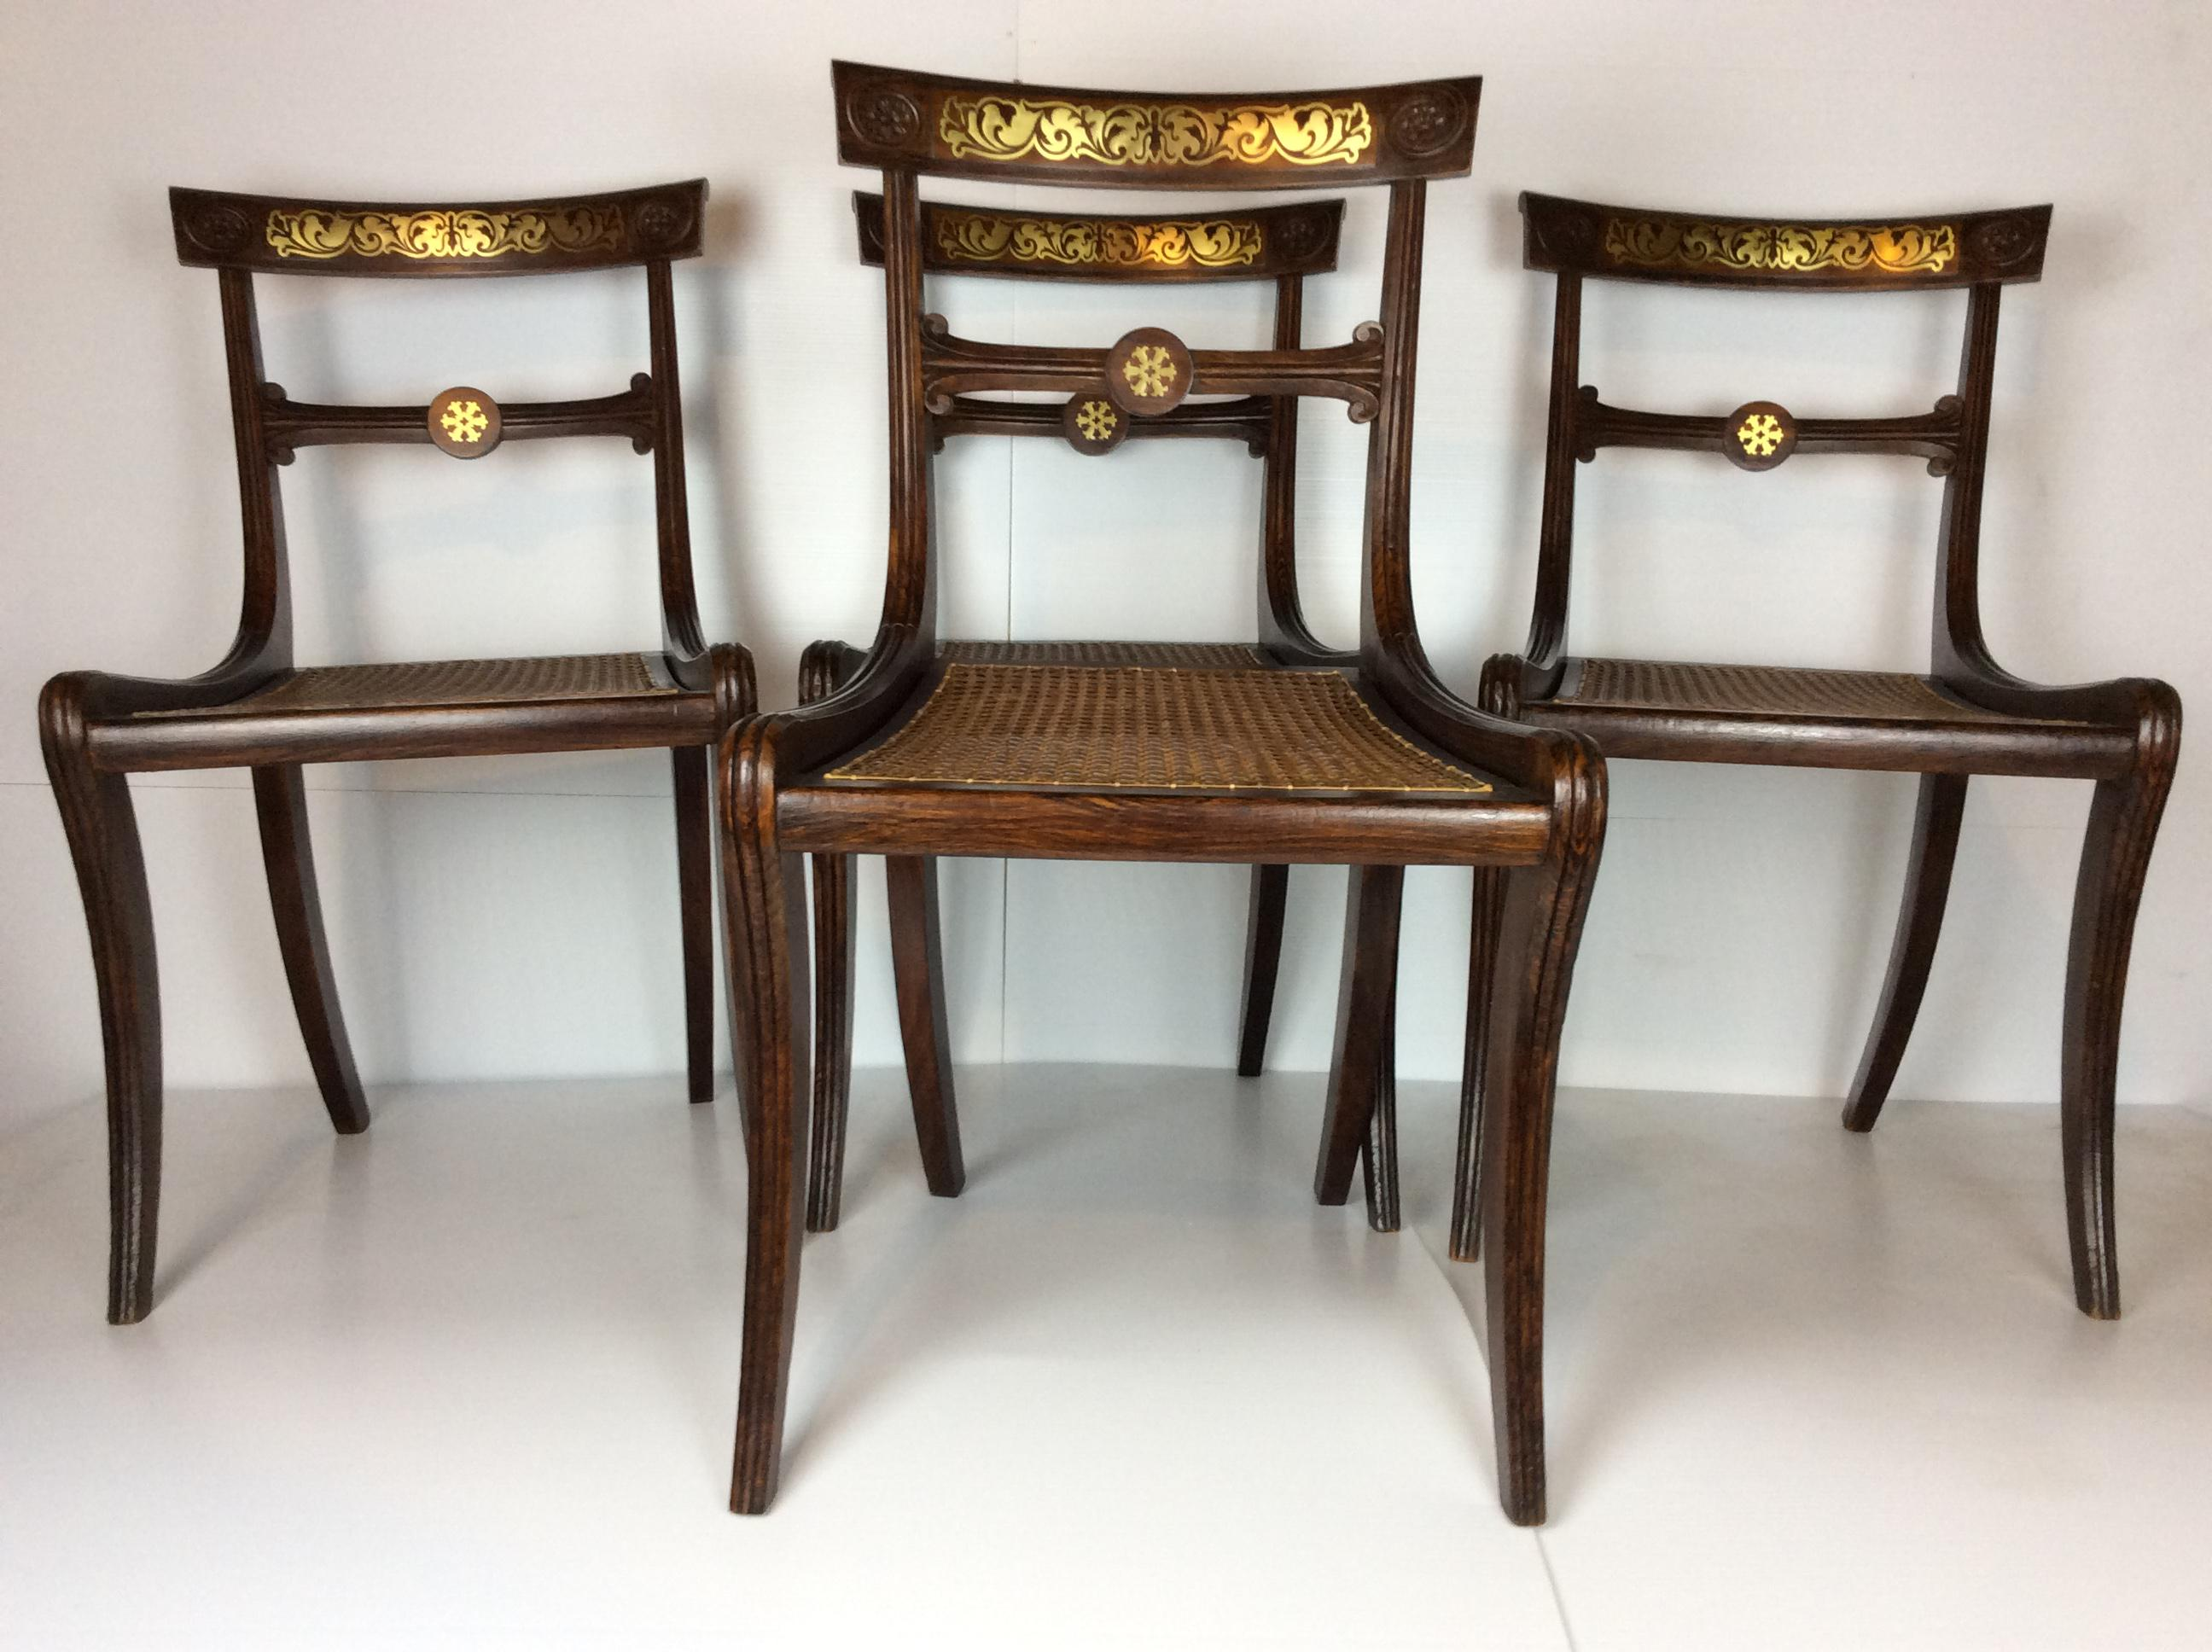 English 19th Century Regency Faux Grain Painted Chairs   Set Of 4   Image 2  Of